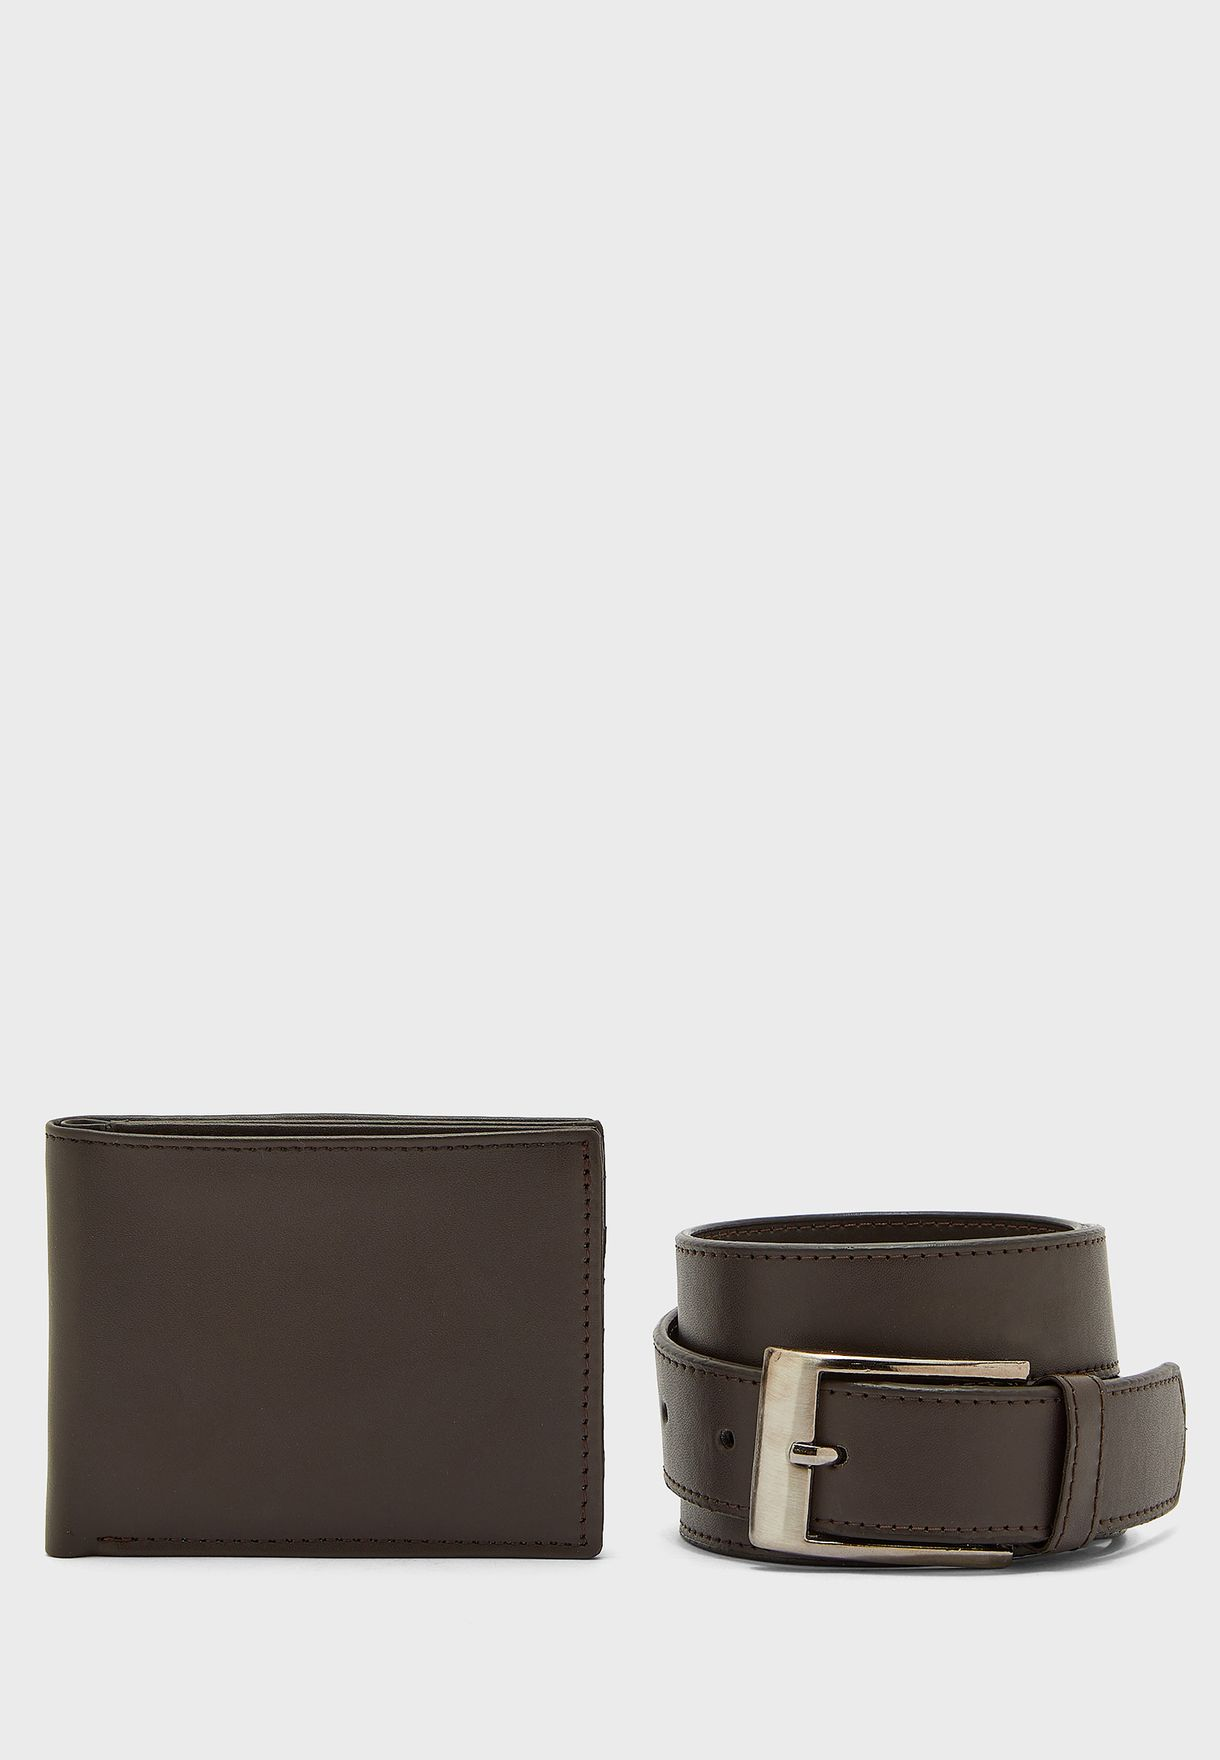 Wallet & Belt Gift Set